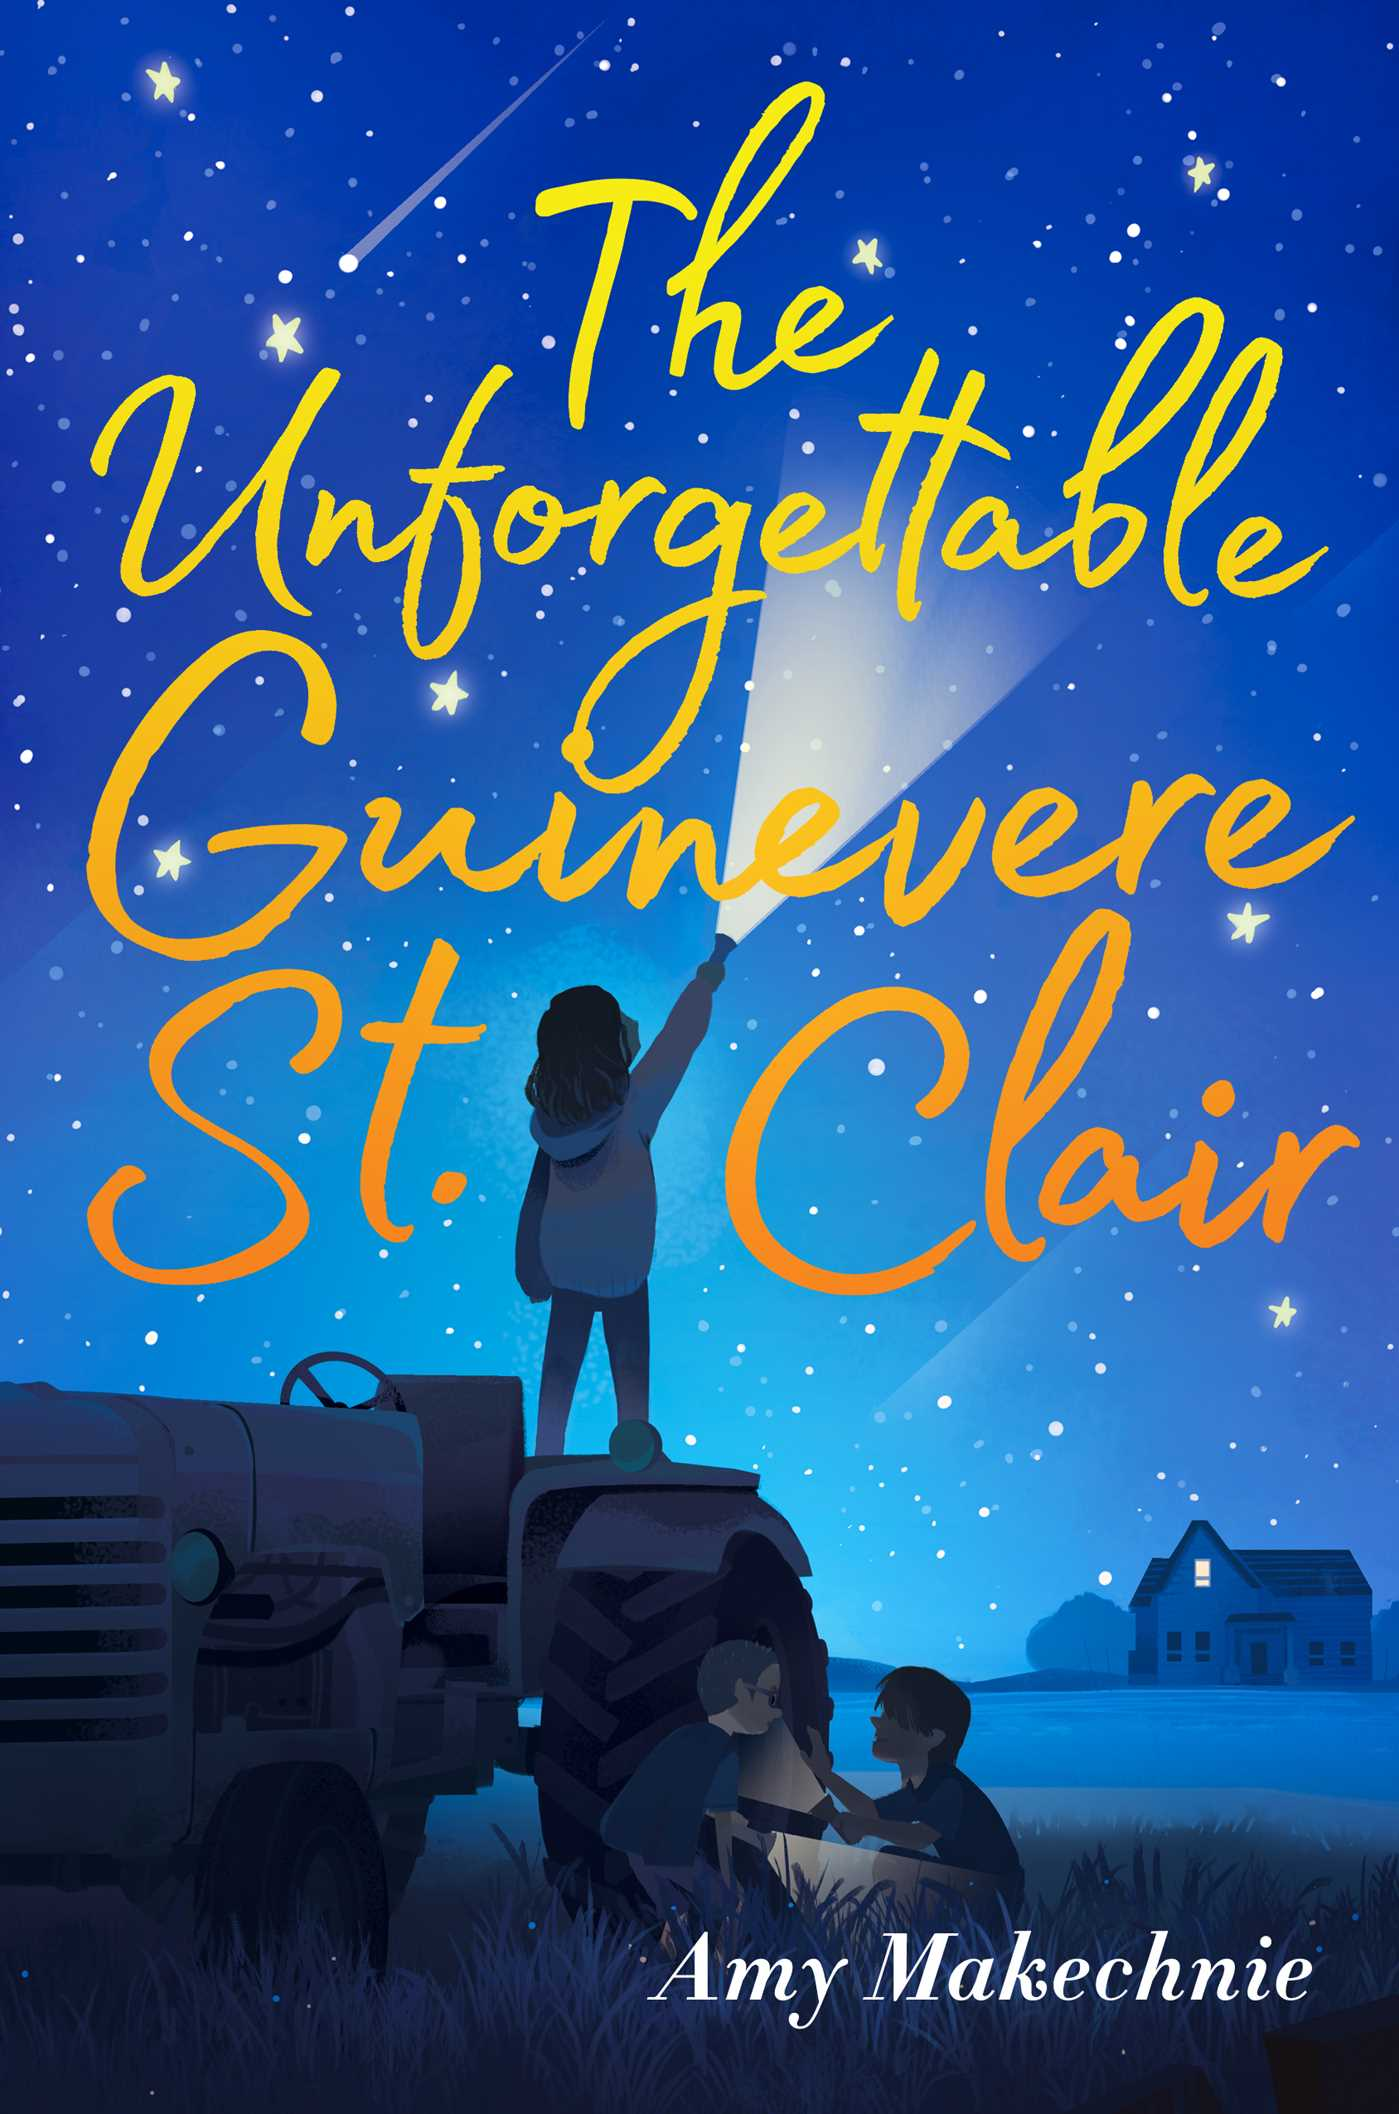 The unforgettable guinevere st clair 9781534414464 hr